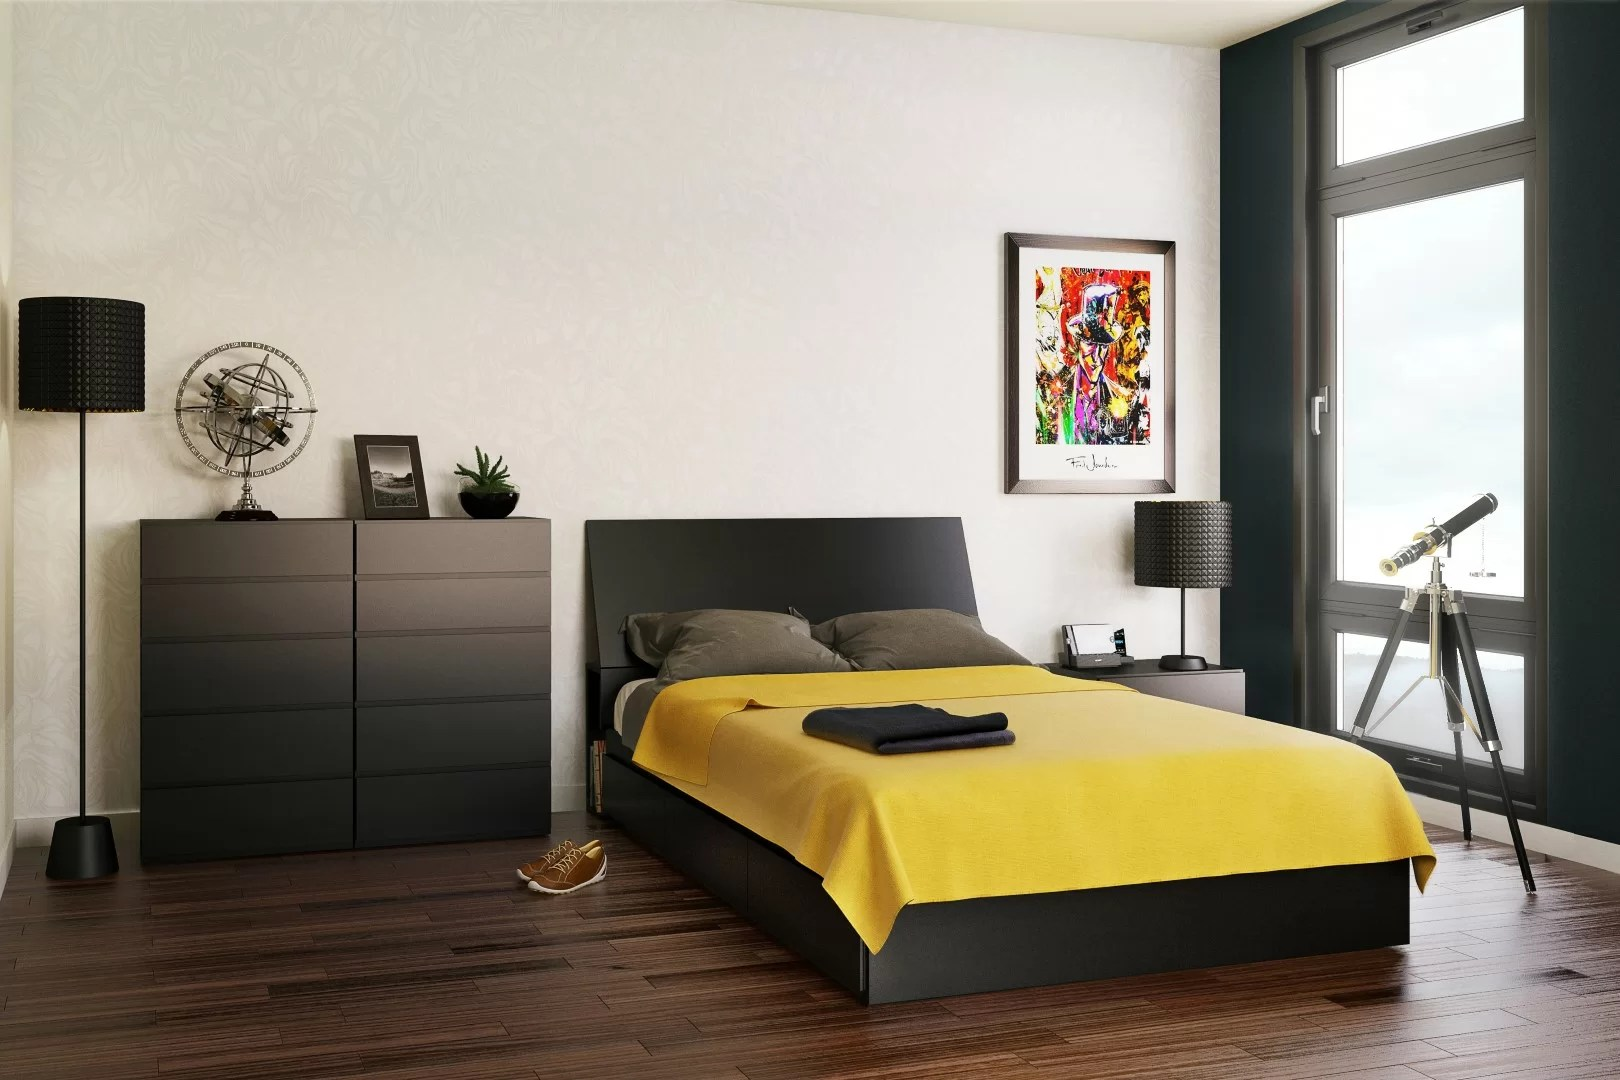 Bedding Storage Bowlin Wood Platform Bed With Storage